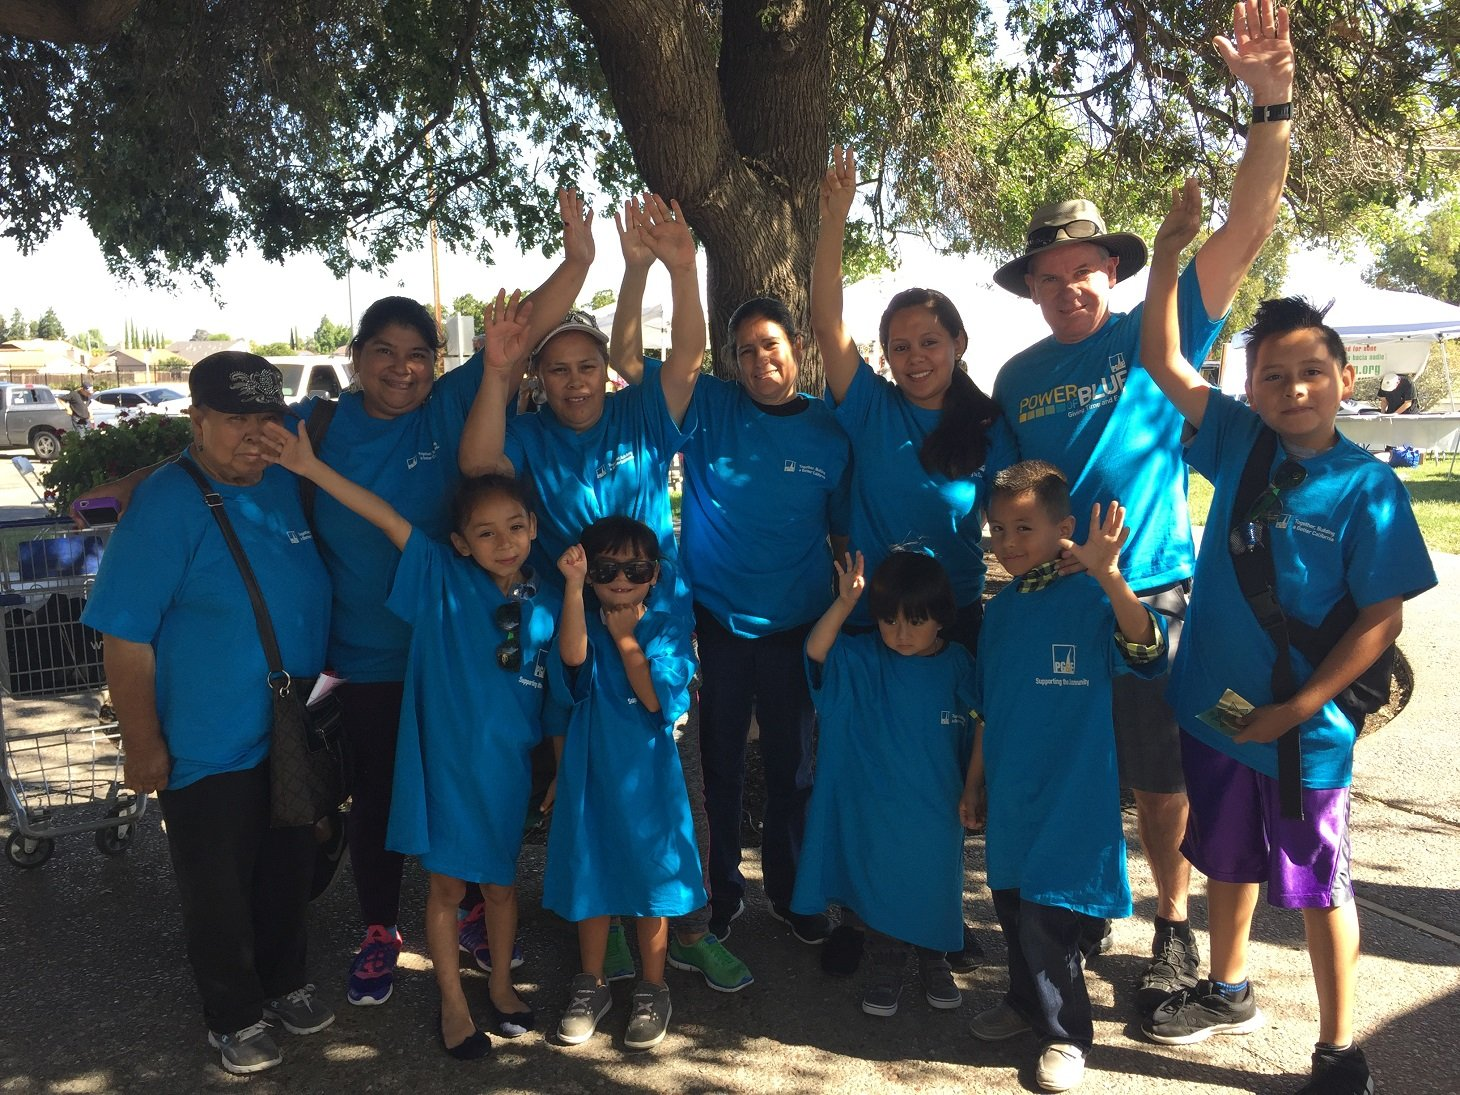 PG&E annually sponsors and volunteers at Bay Point's Unity in Community event